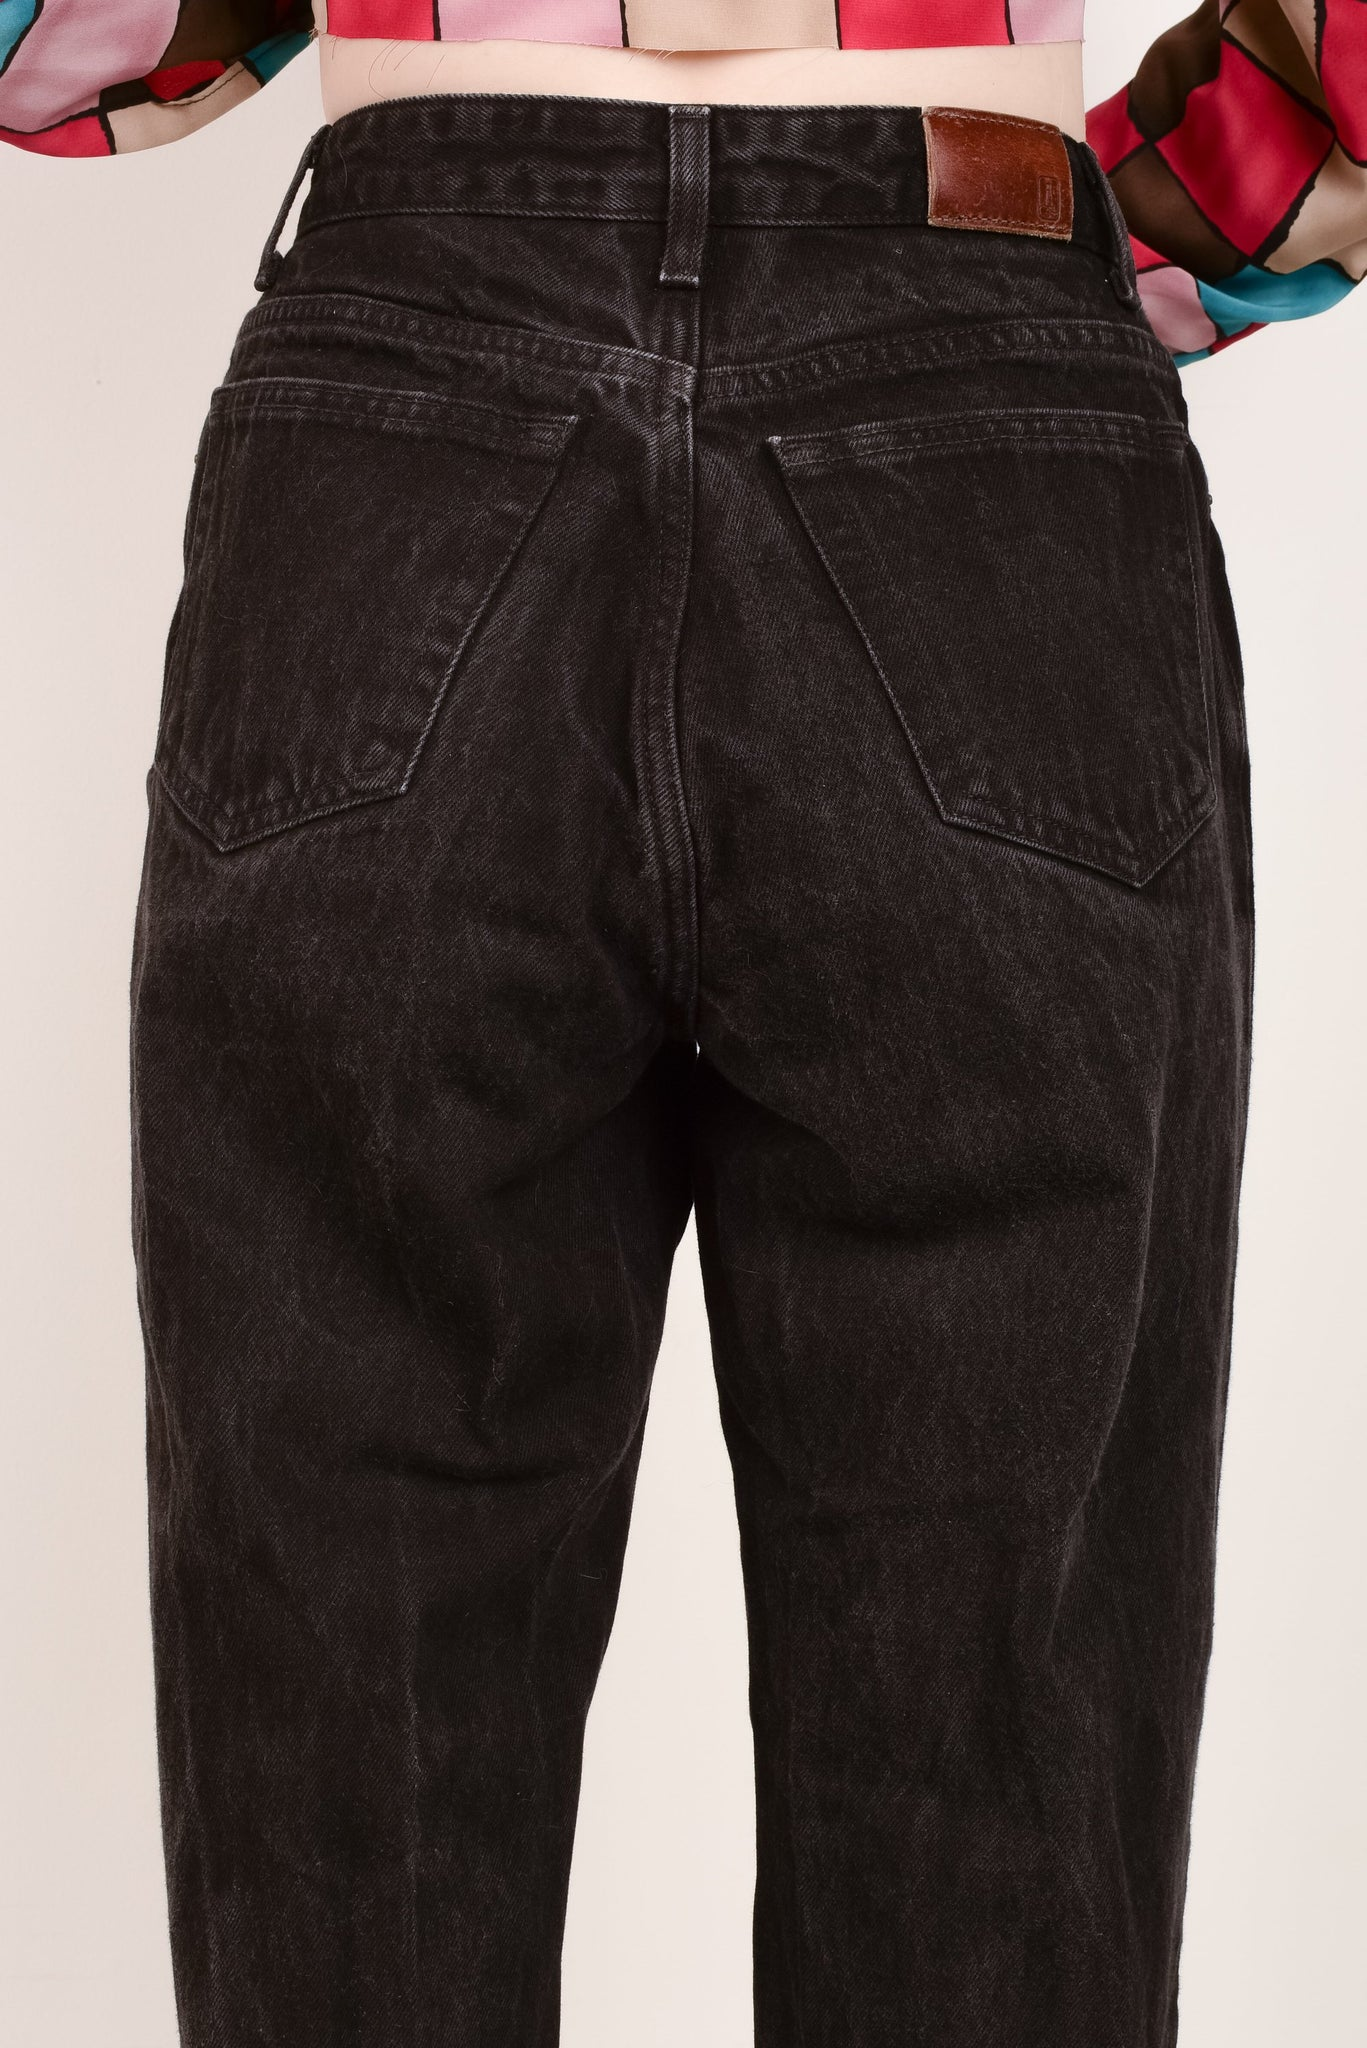 Vintage Charcoal LANDS'END Denim Pants  / S/M